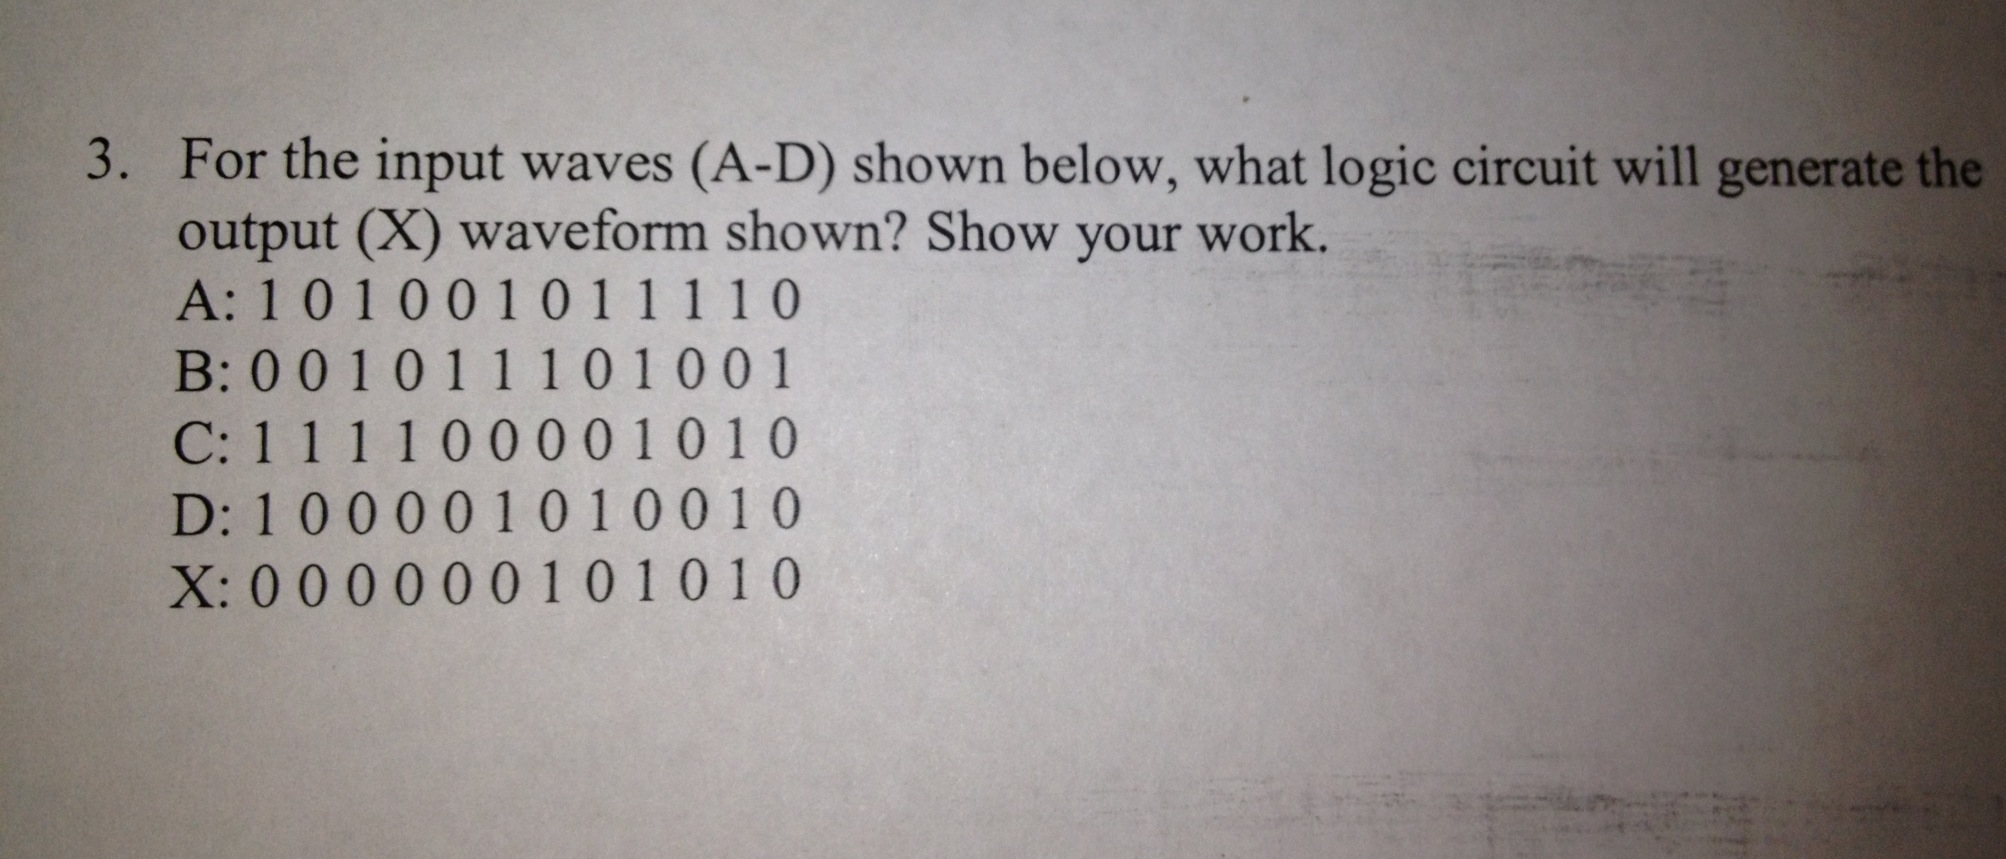 For the input waves (A-D) shown below, what logic